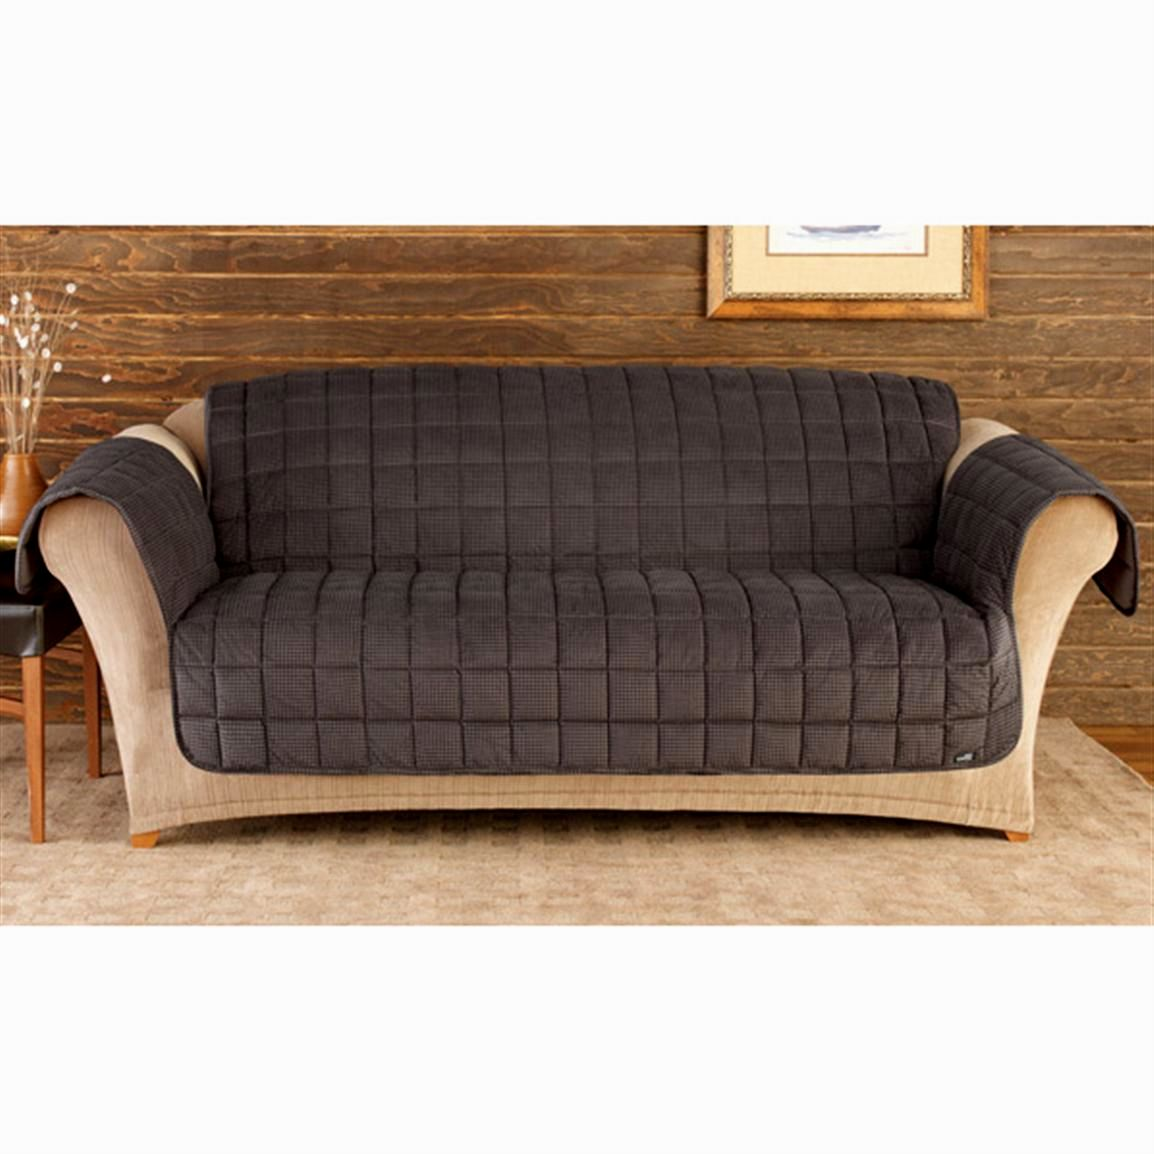 modern sofa pet cover image-New sofa Pet Cover Collection